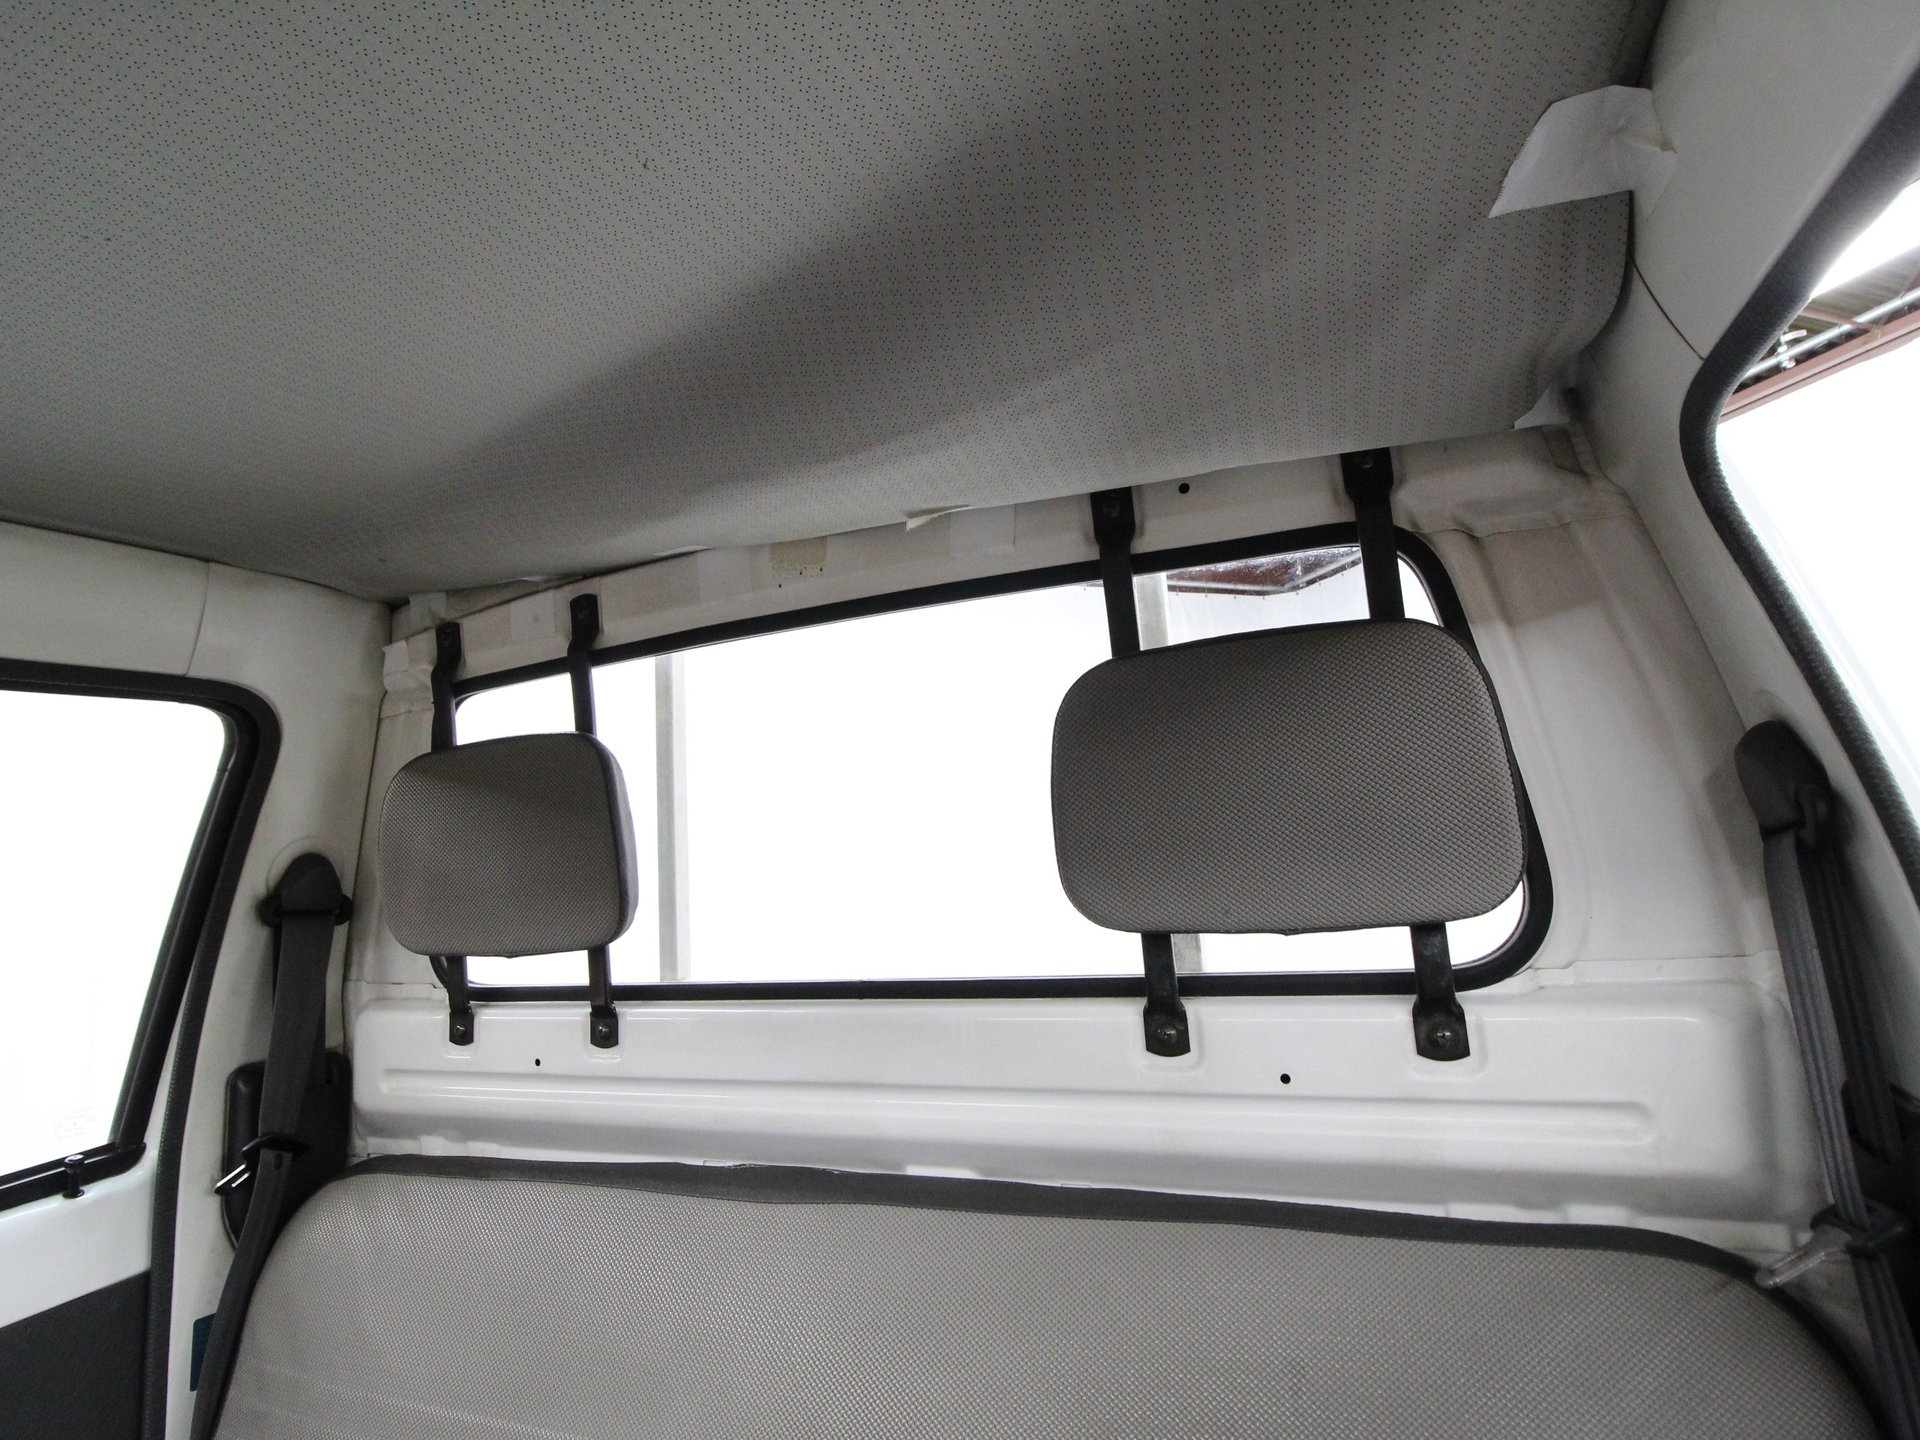 1995 Suzuki Carry